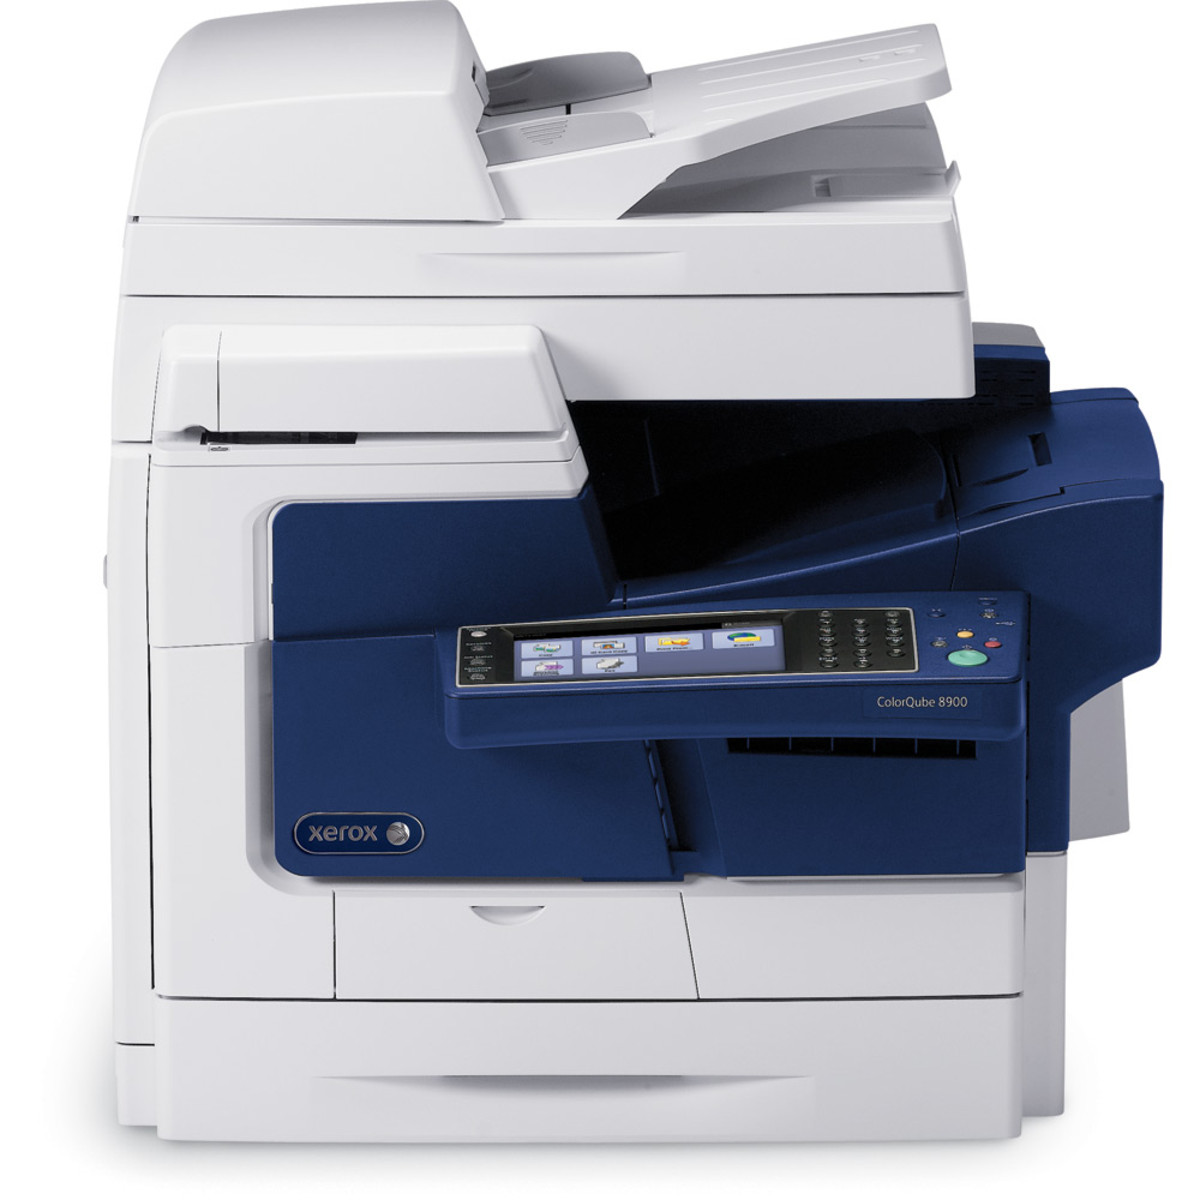 Xerox FX ColourQube 8900 Solid Ink Multifunction Printer